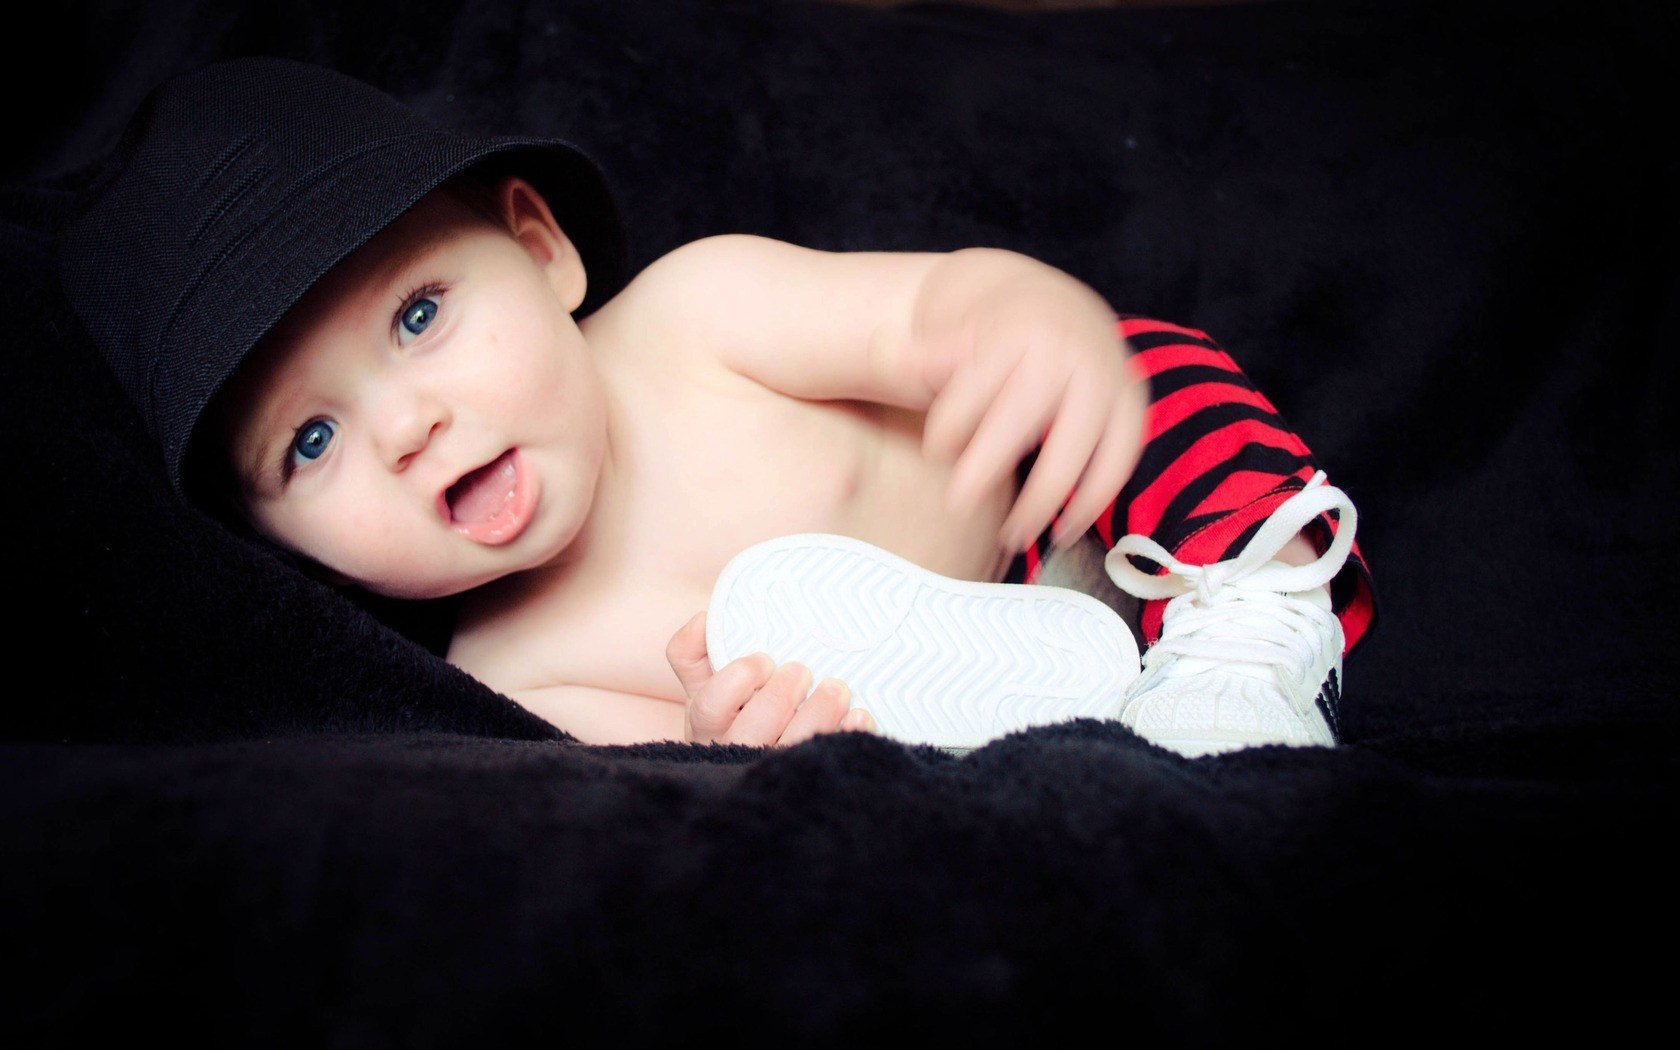 Cute Baby Pics Wallpapers 64 Images: Cute Boy Pictures Wallpaper